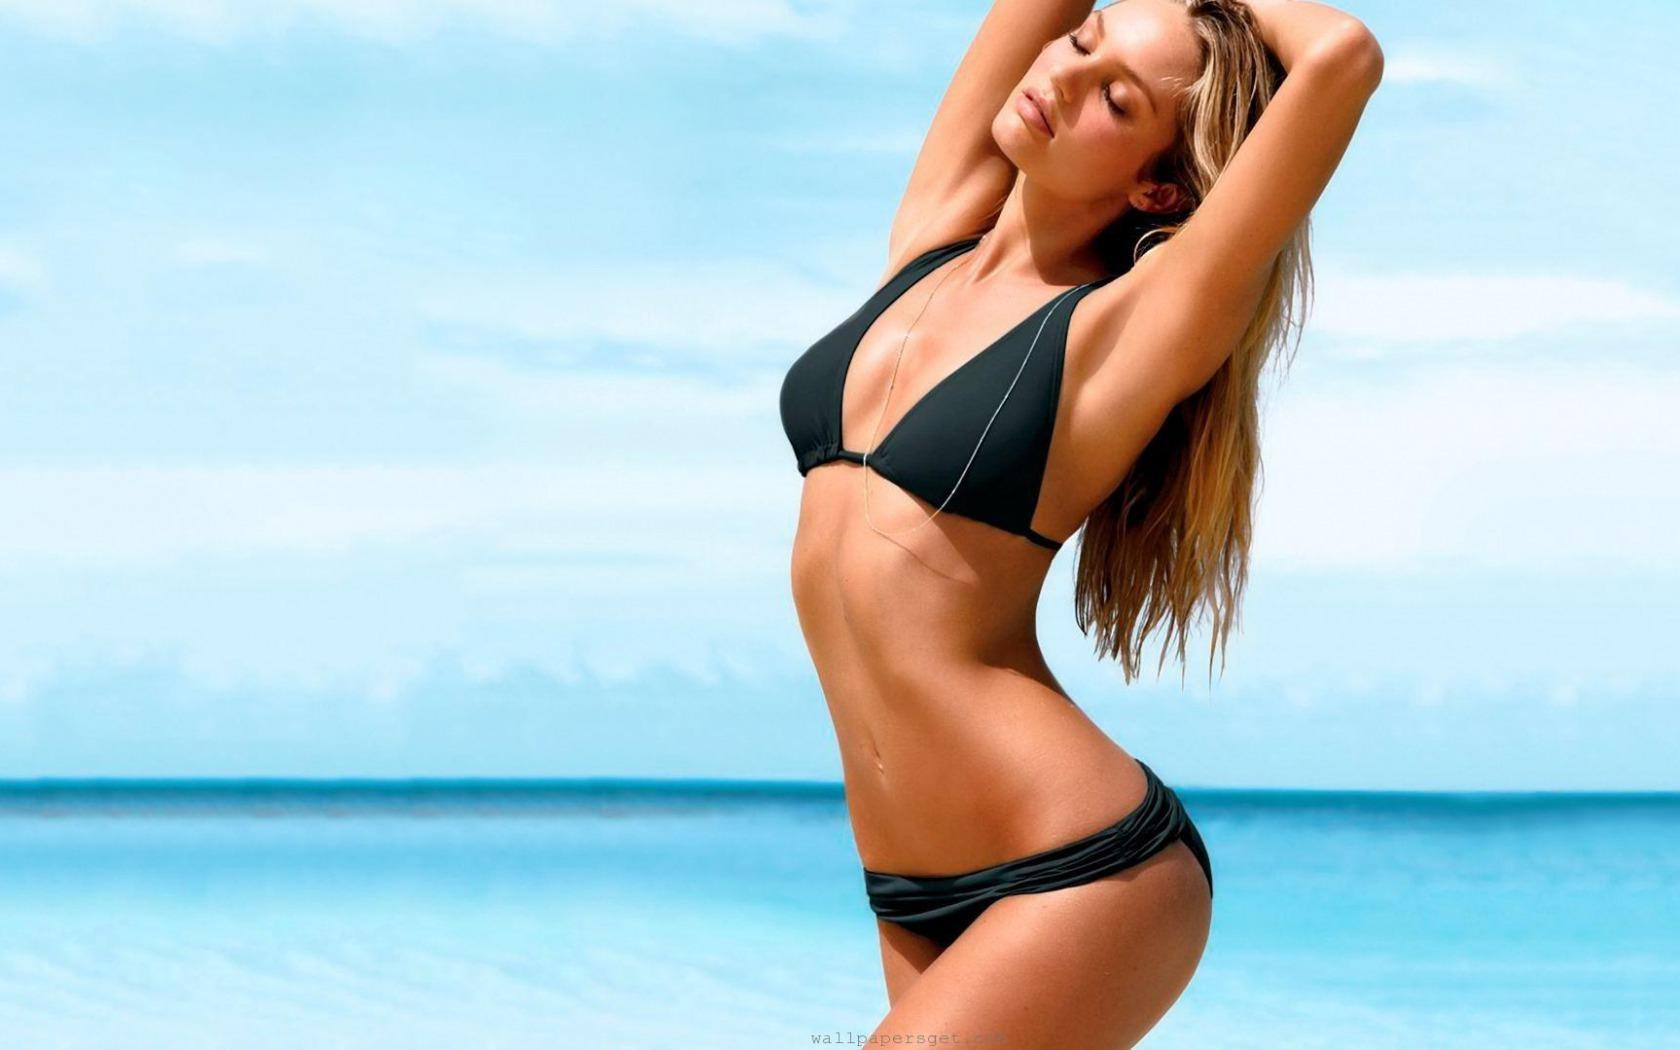 Criolipólise - Coolsculpting®